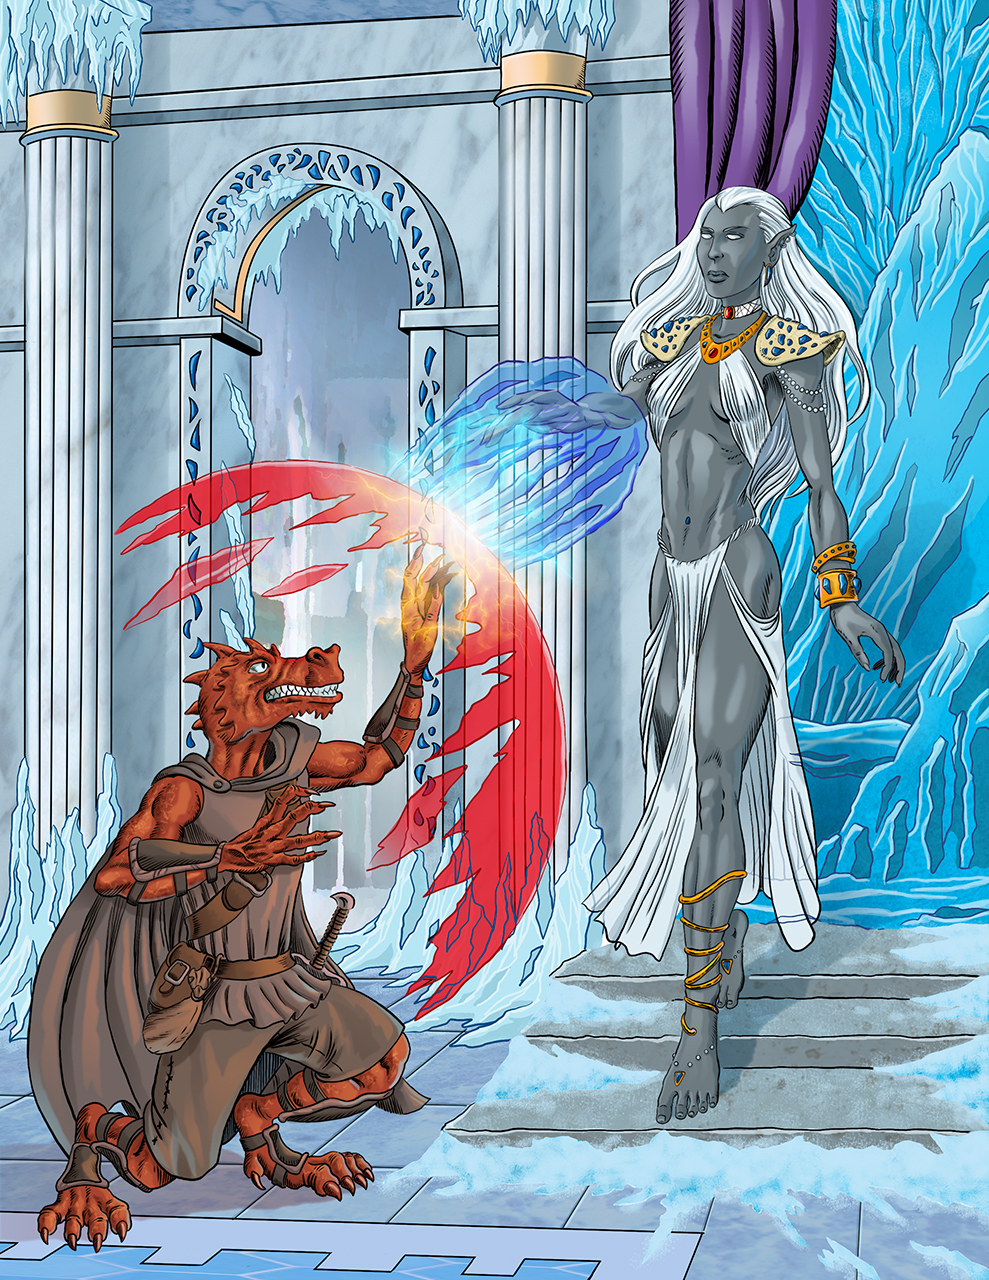 A New Saga - Battle against the Drow Priestess by Inkslinger